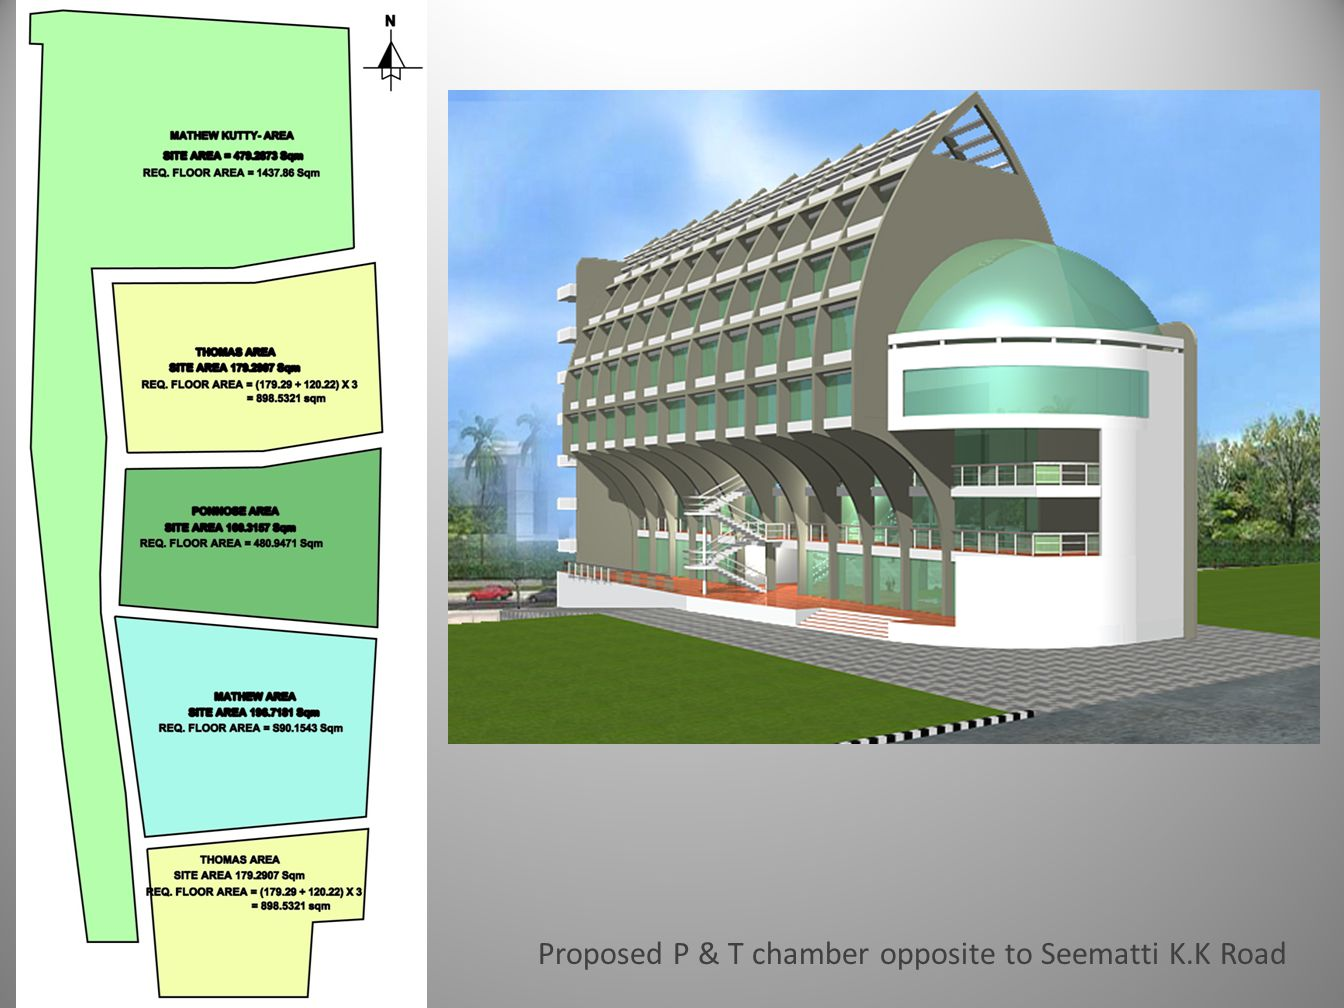 Proposed P & T chamber opposite to Seematti K.K Road